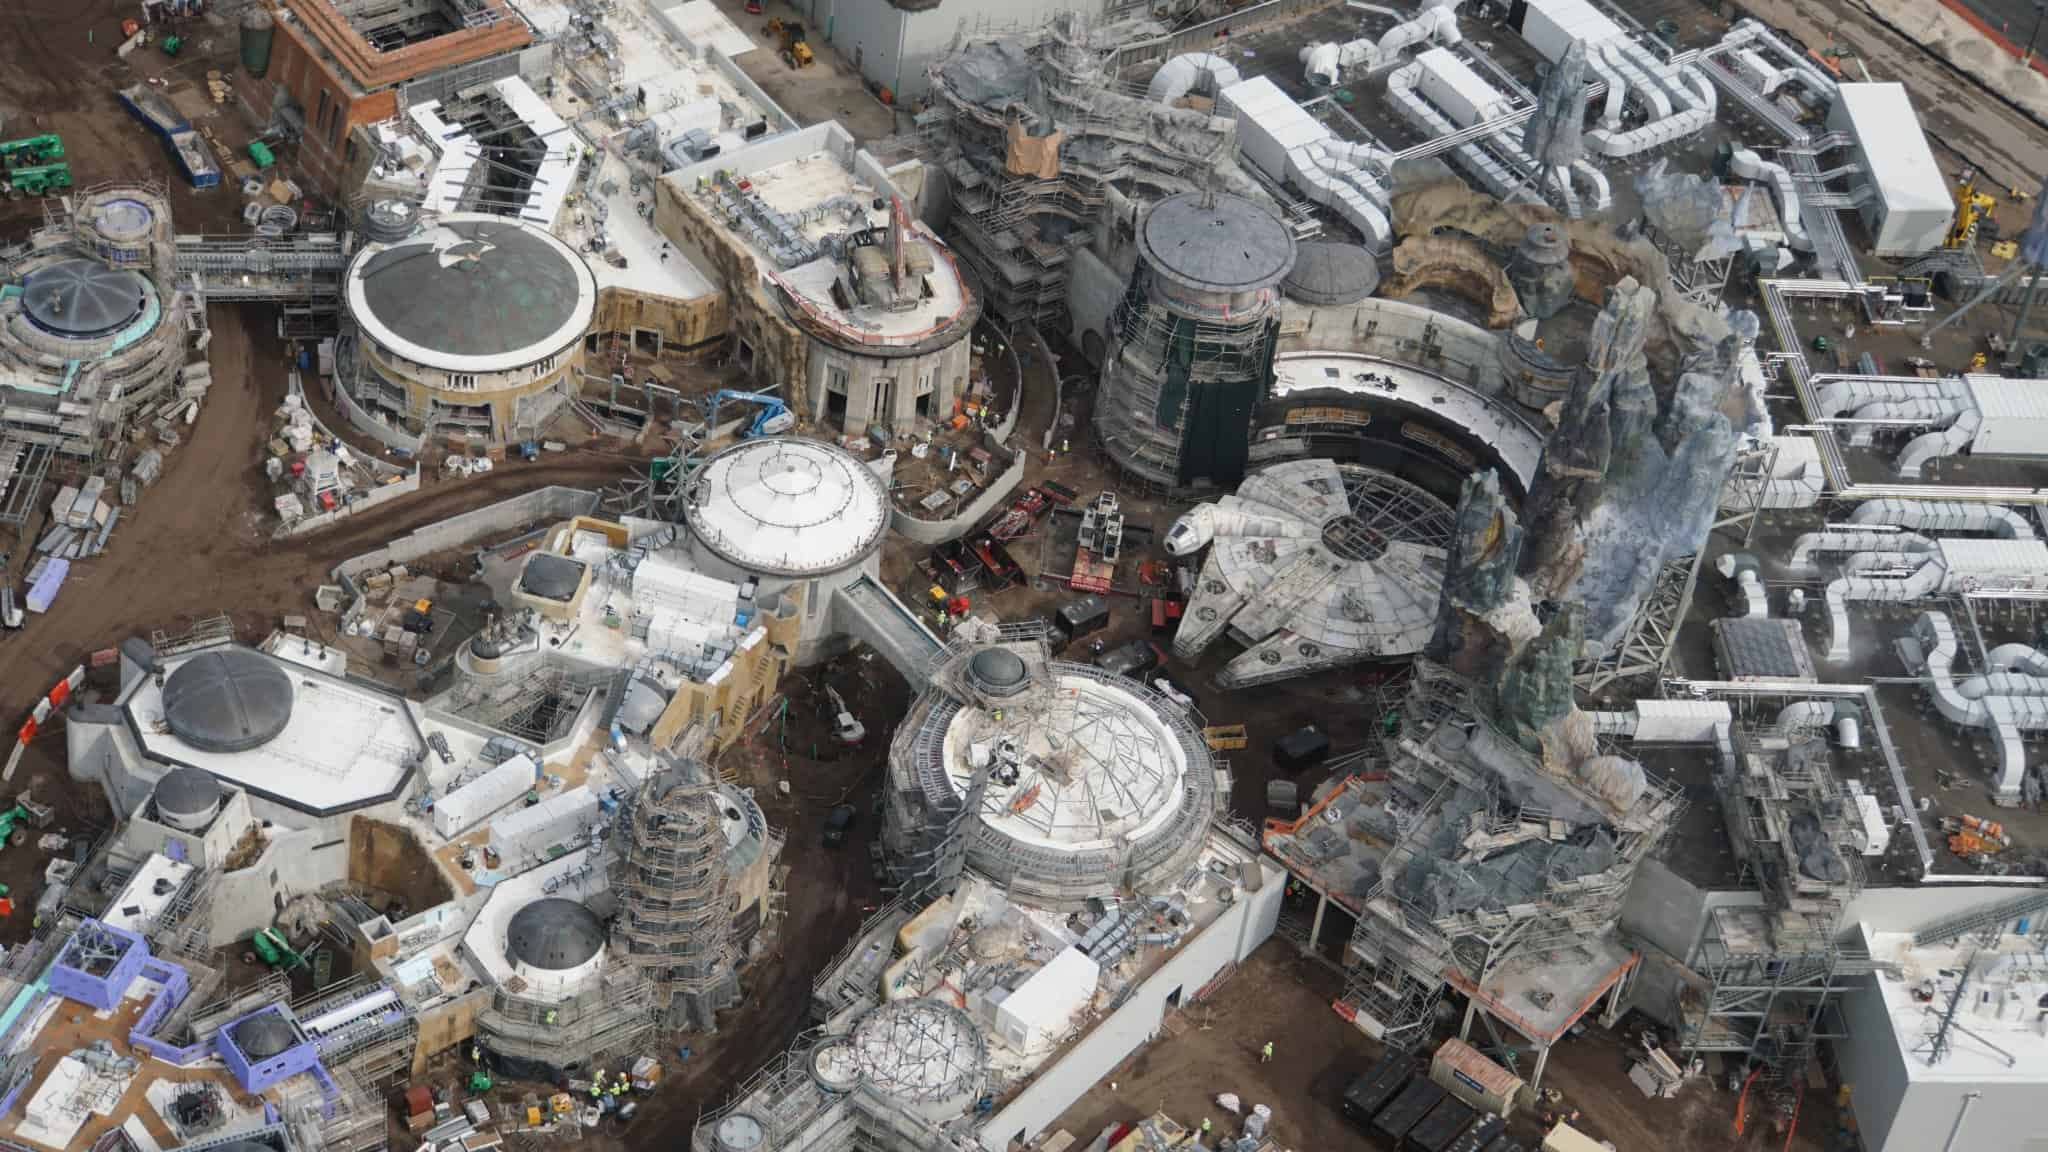 Galaxy's Edge Update February 2019 Black Spire Outpost and Millennium Falcon